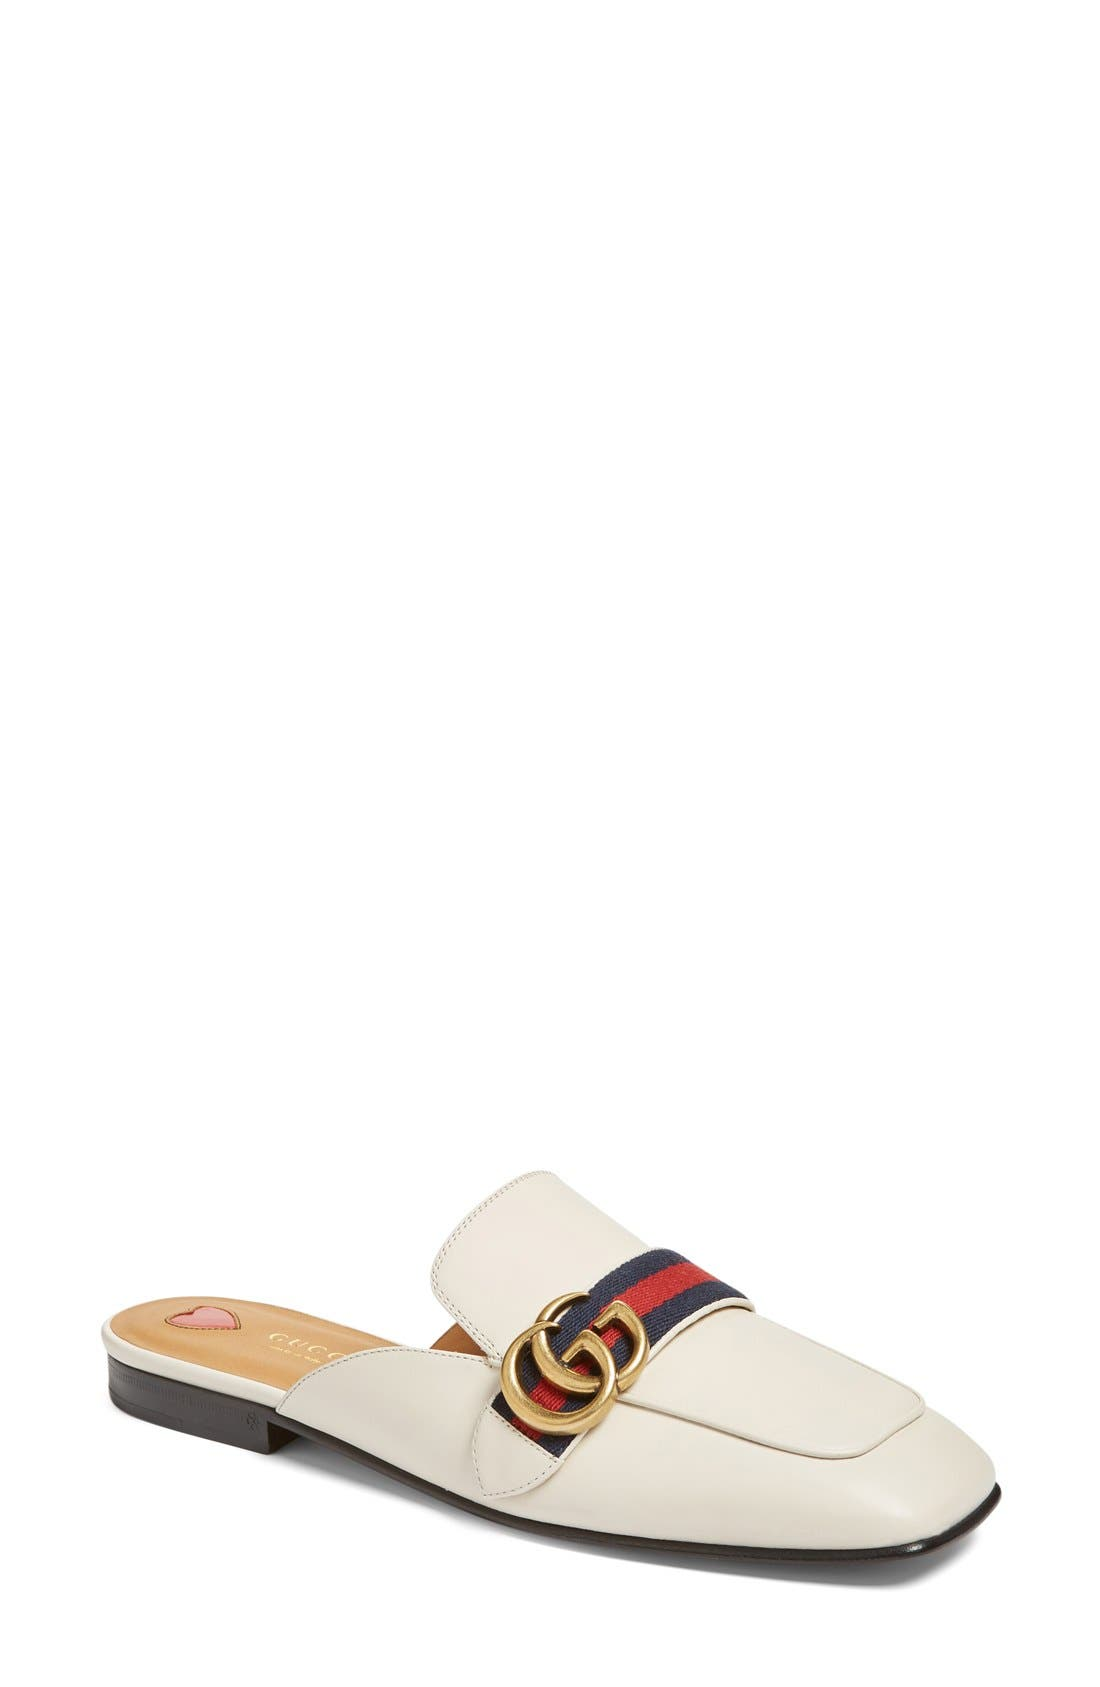 Loafer Mule,                         Main,                         color, White Leather